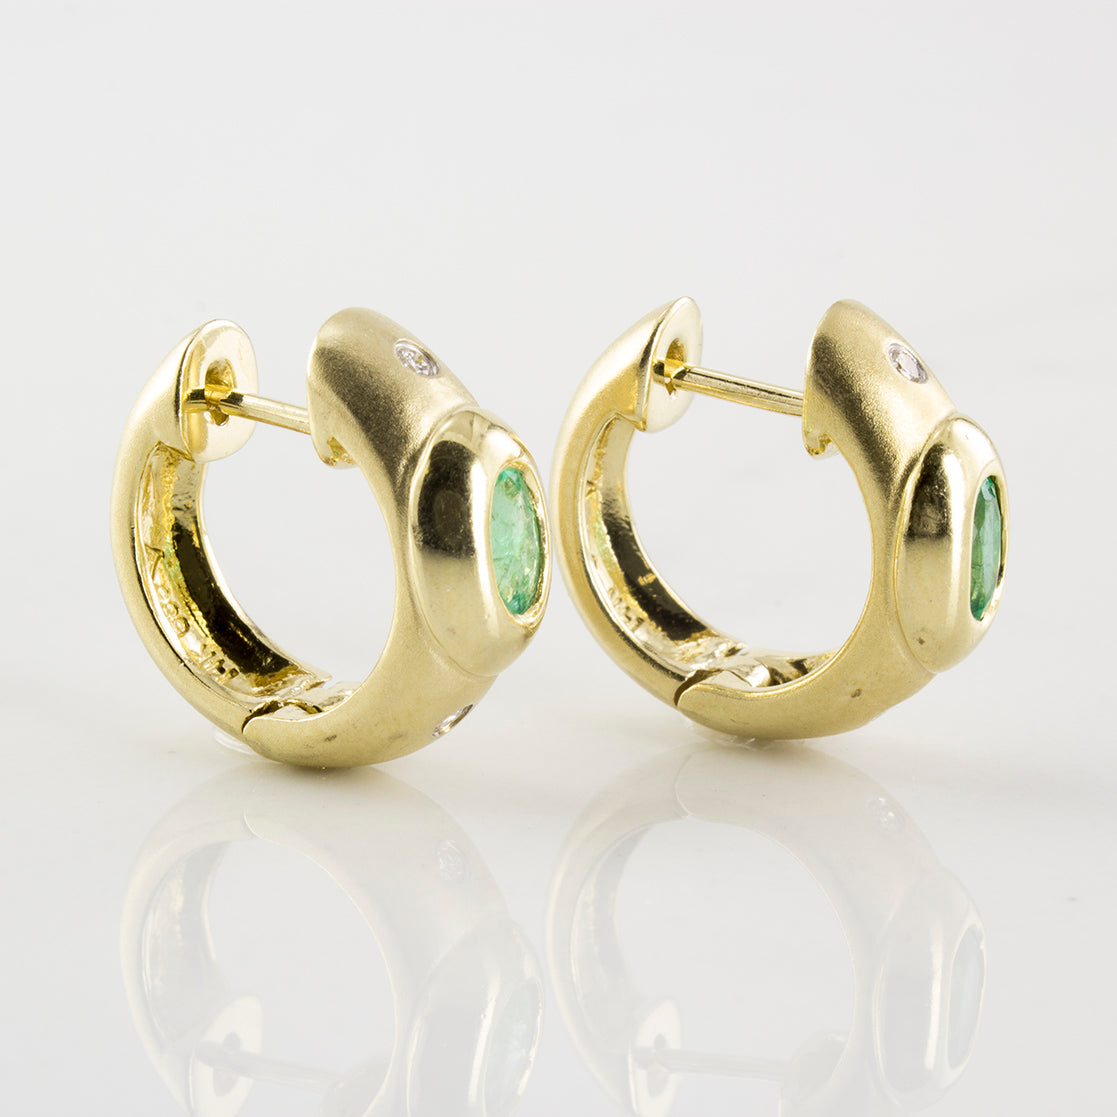 'Birks' Oval Emerald & Diamond Accent Hoop Earrings | 0.04ctw, 0.46ctw |